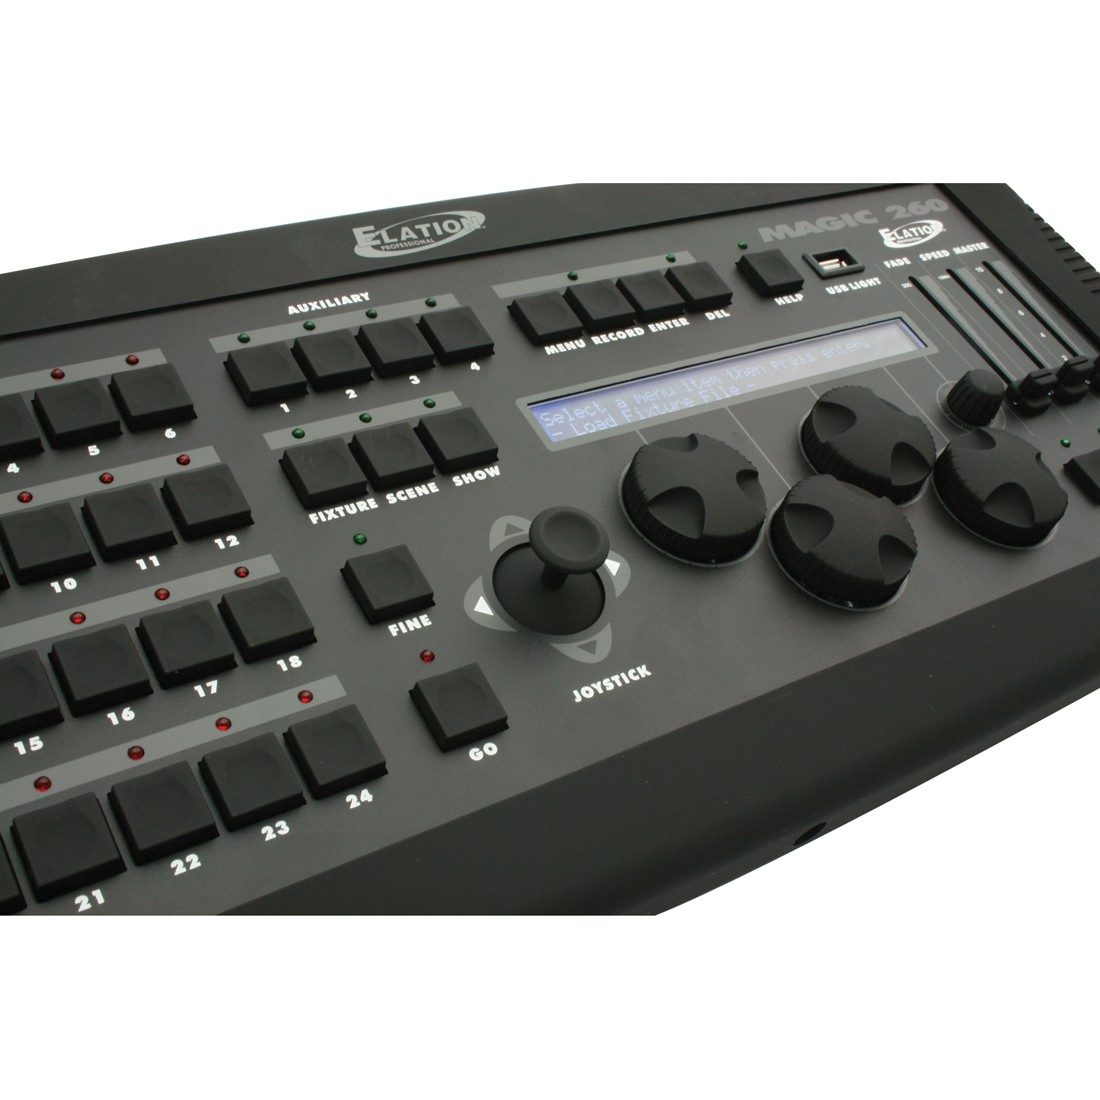 Magic 260 DMX controller - Product Archive - Products